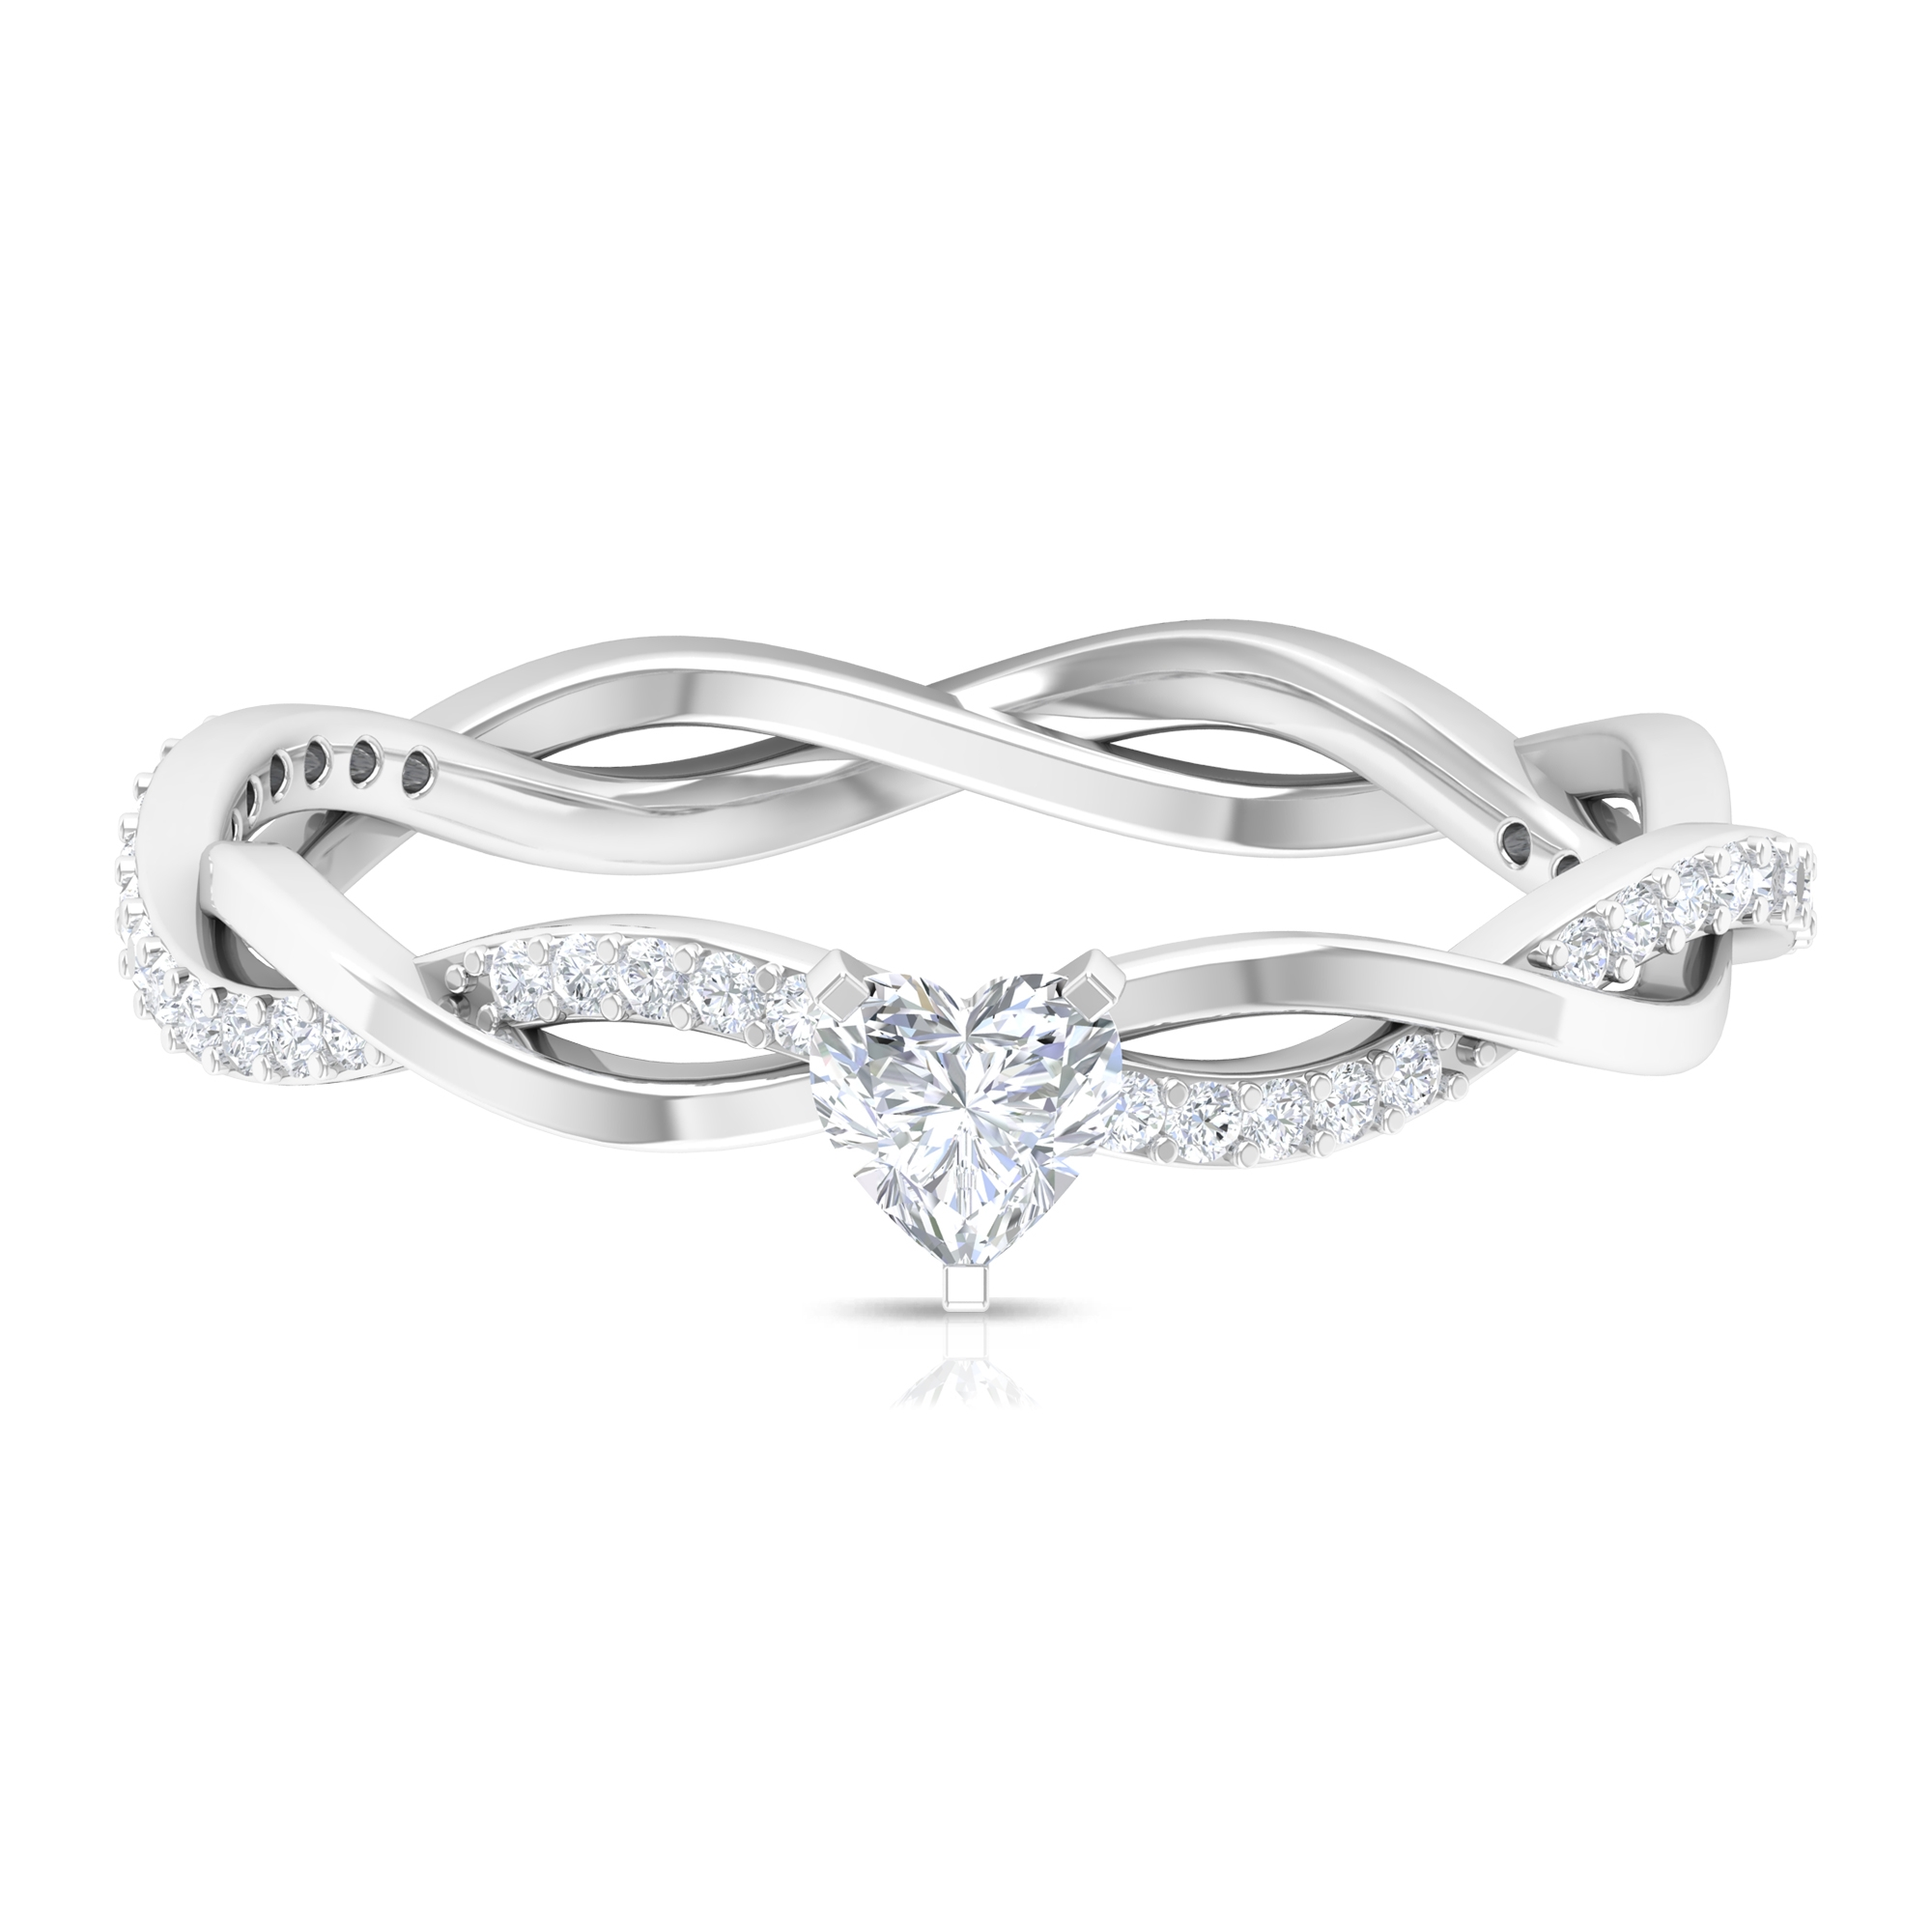 1/2 CT Three Prong Peg Head Set Solitaire and Braided Diamond Ring for Women